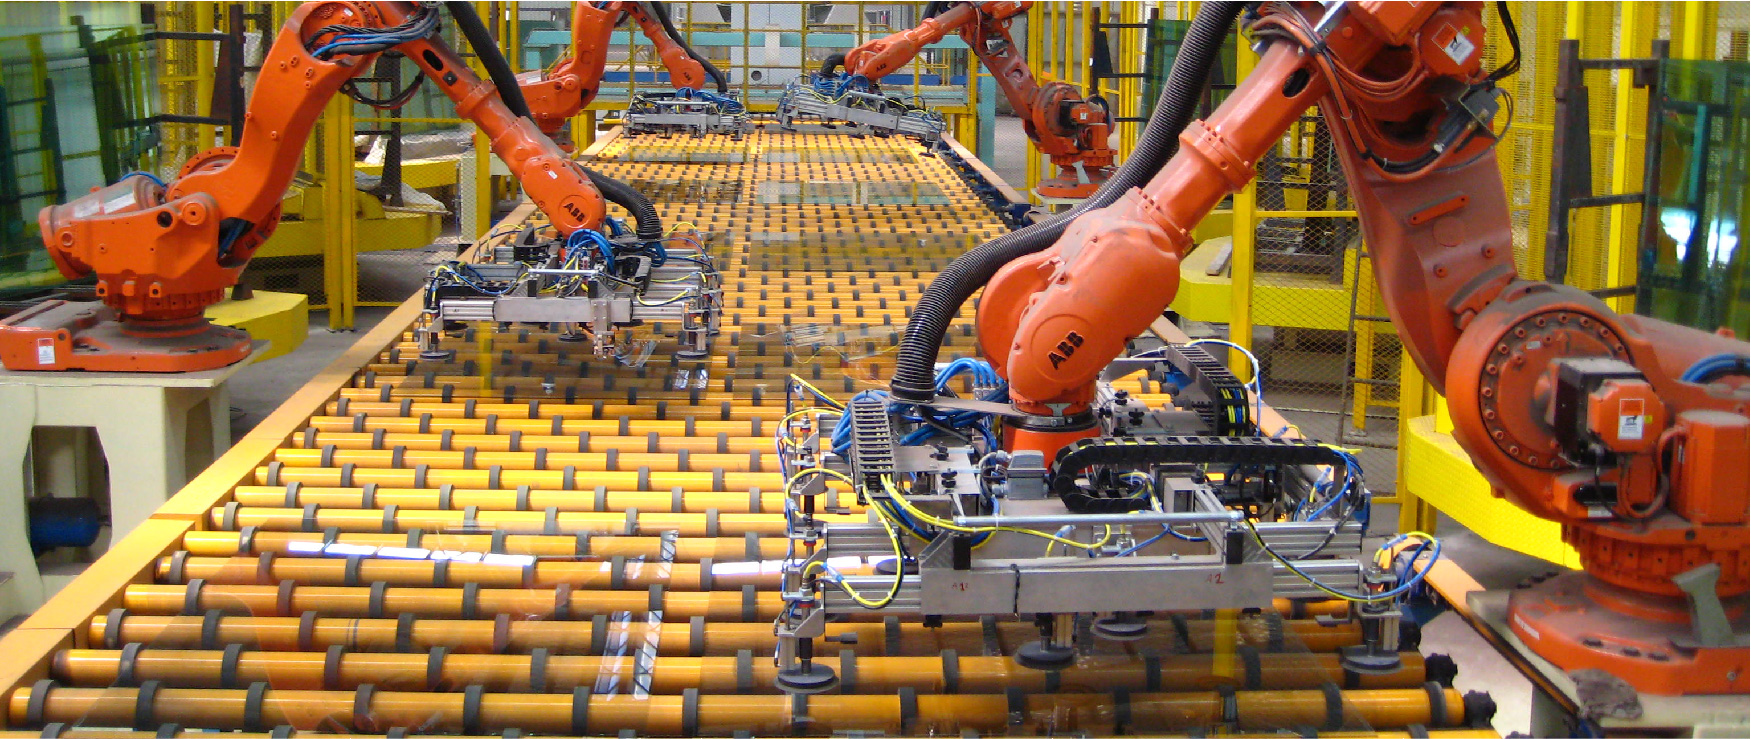 Robot arms loading an unloading sheets of float glass from a rolling conveyor belt.